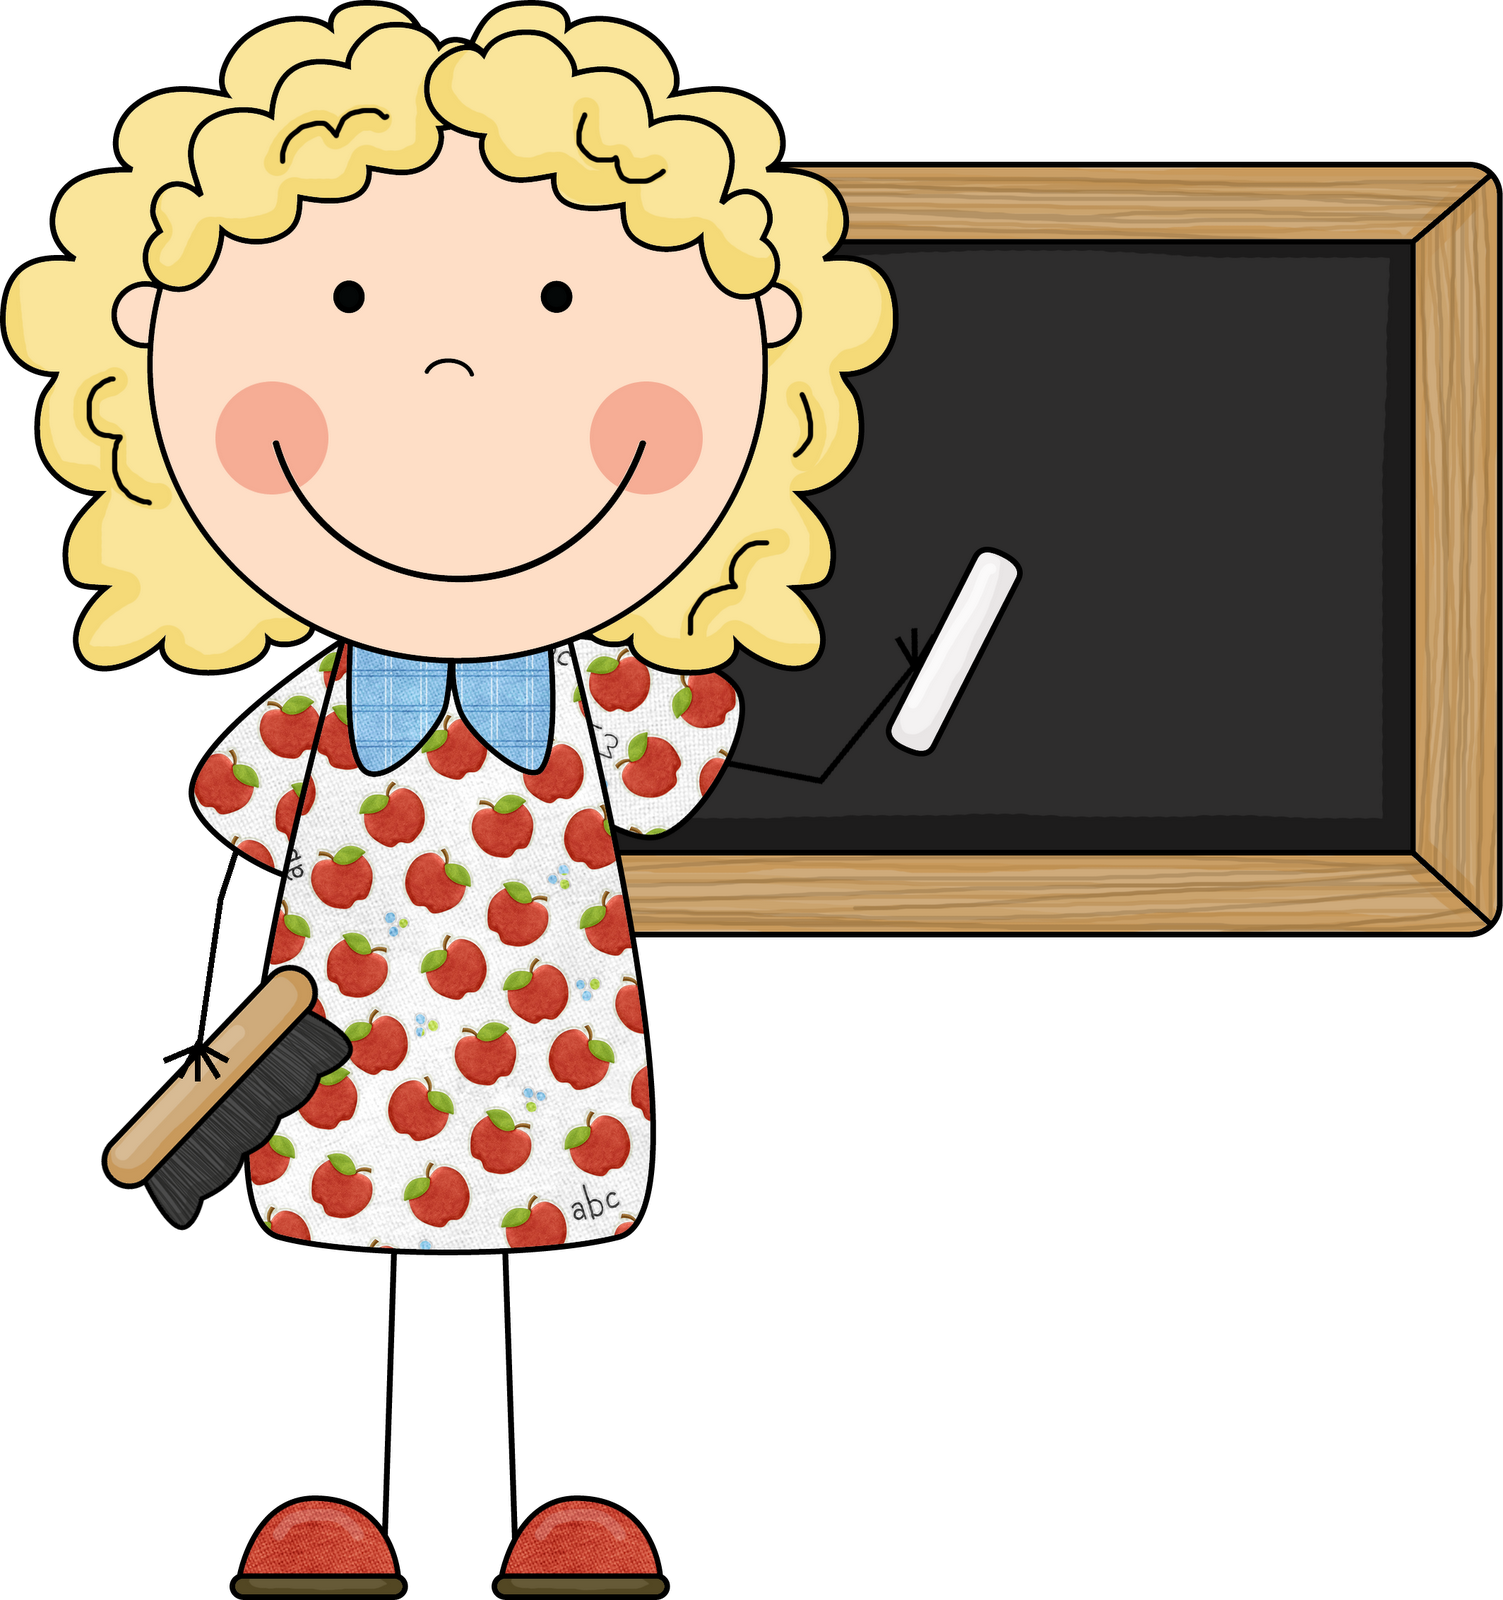 science teacher teaching clipart panda free clipart images rh clipartpanda com science teacher clipart female science teacher clipart